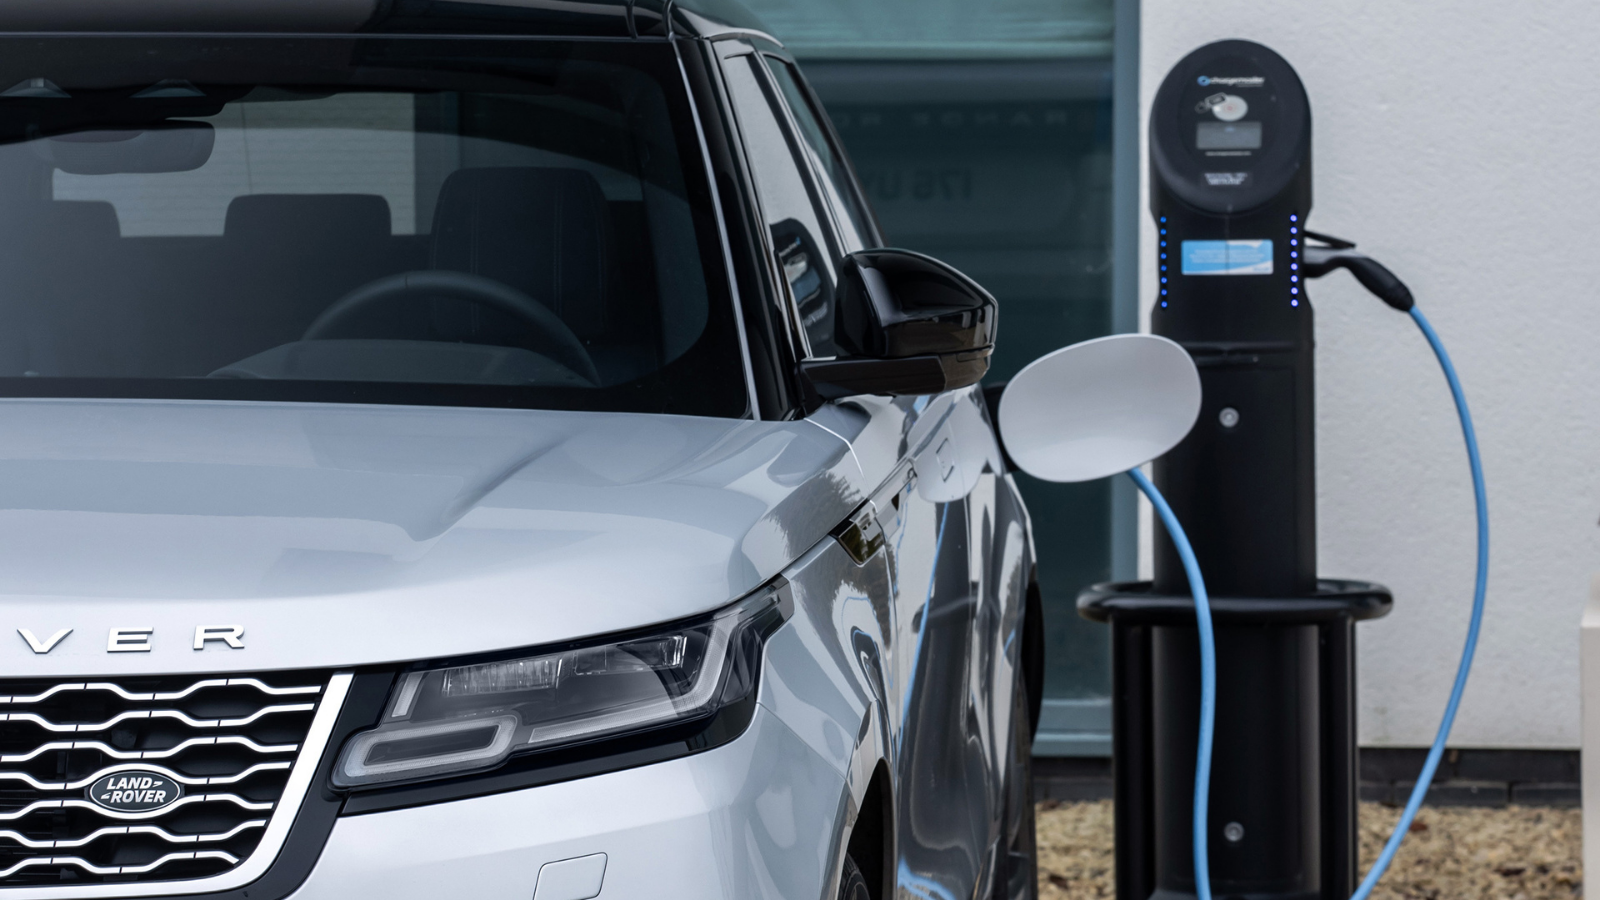 CHARGING AN ELECTRIFIED LAND ROVER VEHICLE